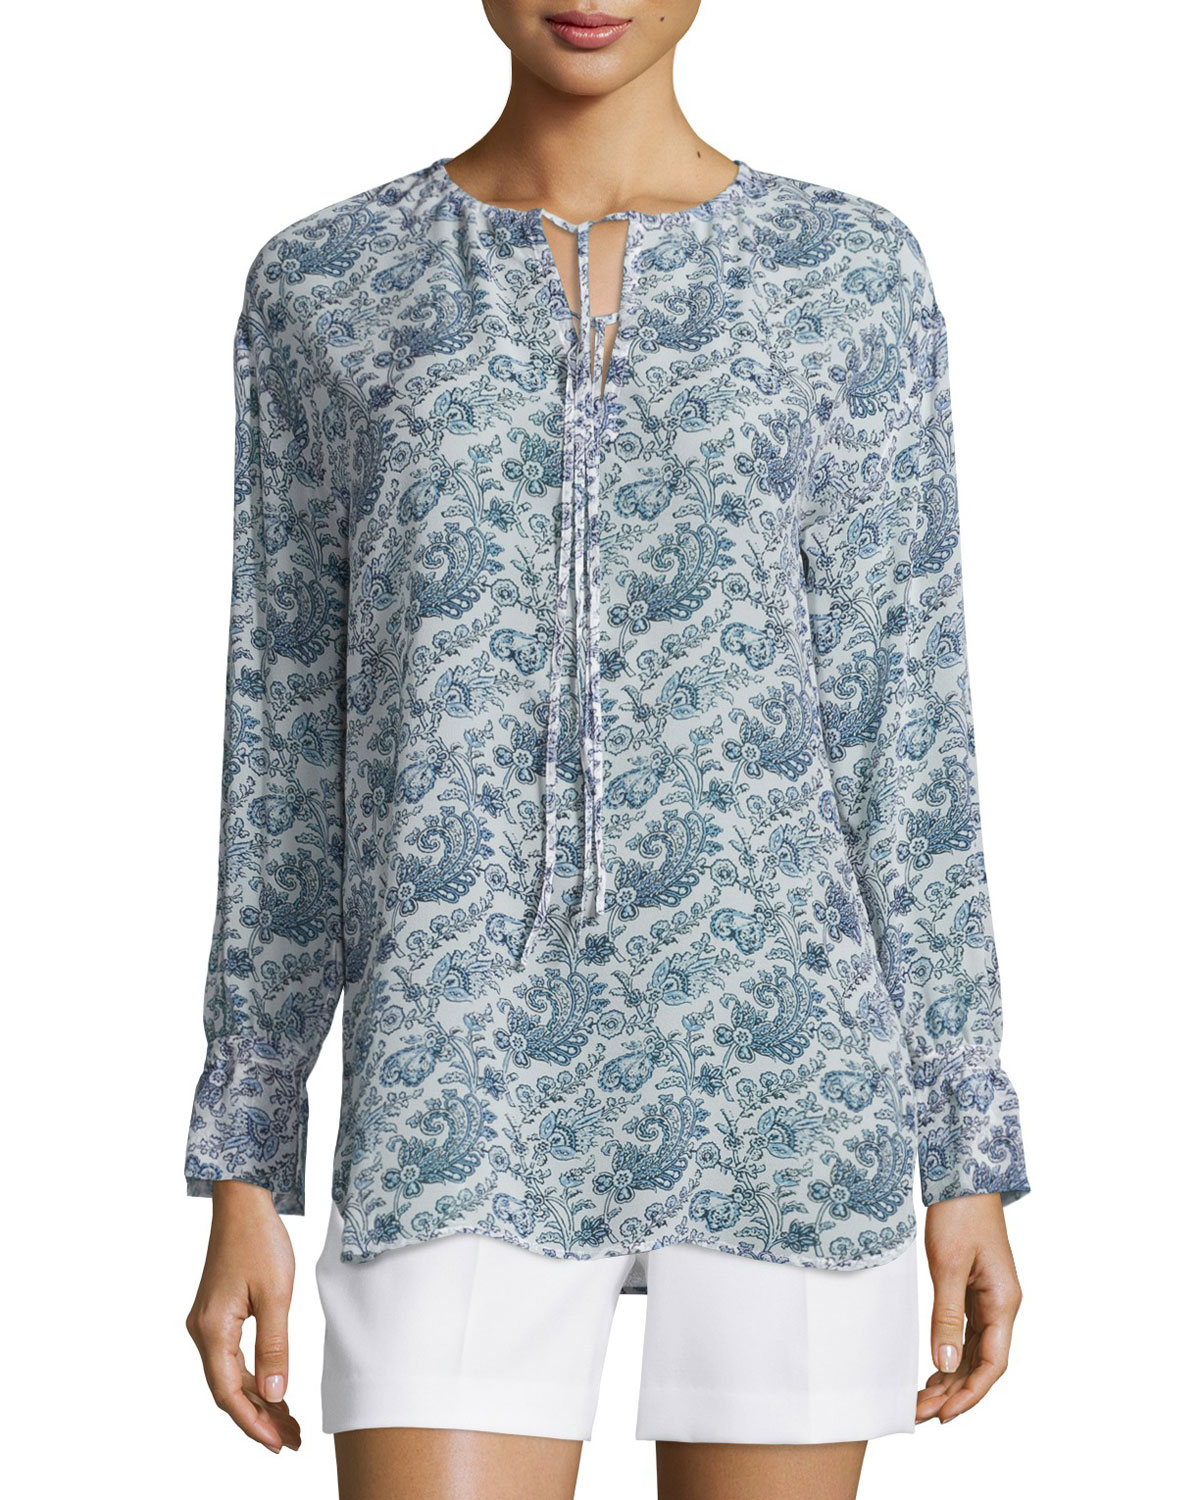 Alrik Avery Printed Silk Blouse